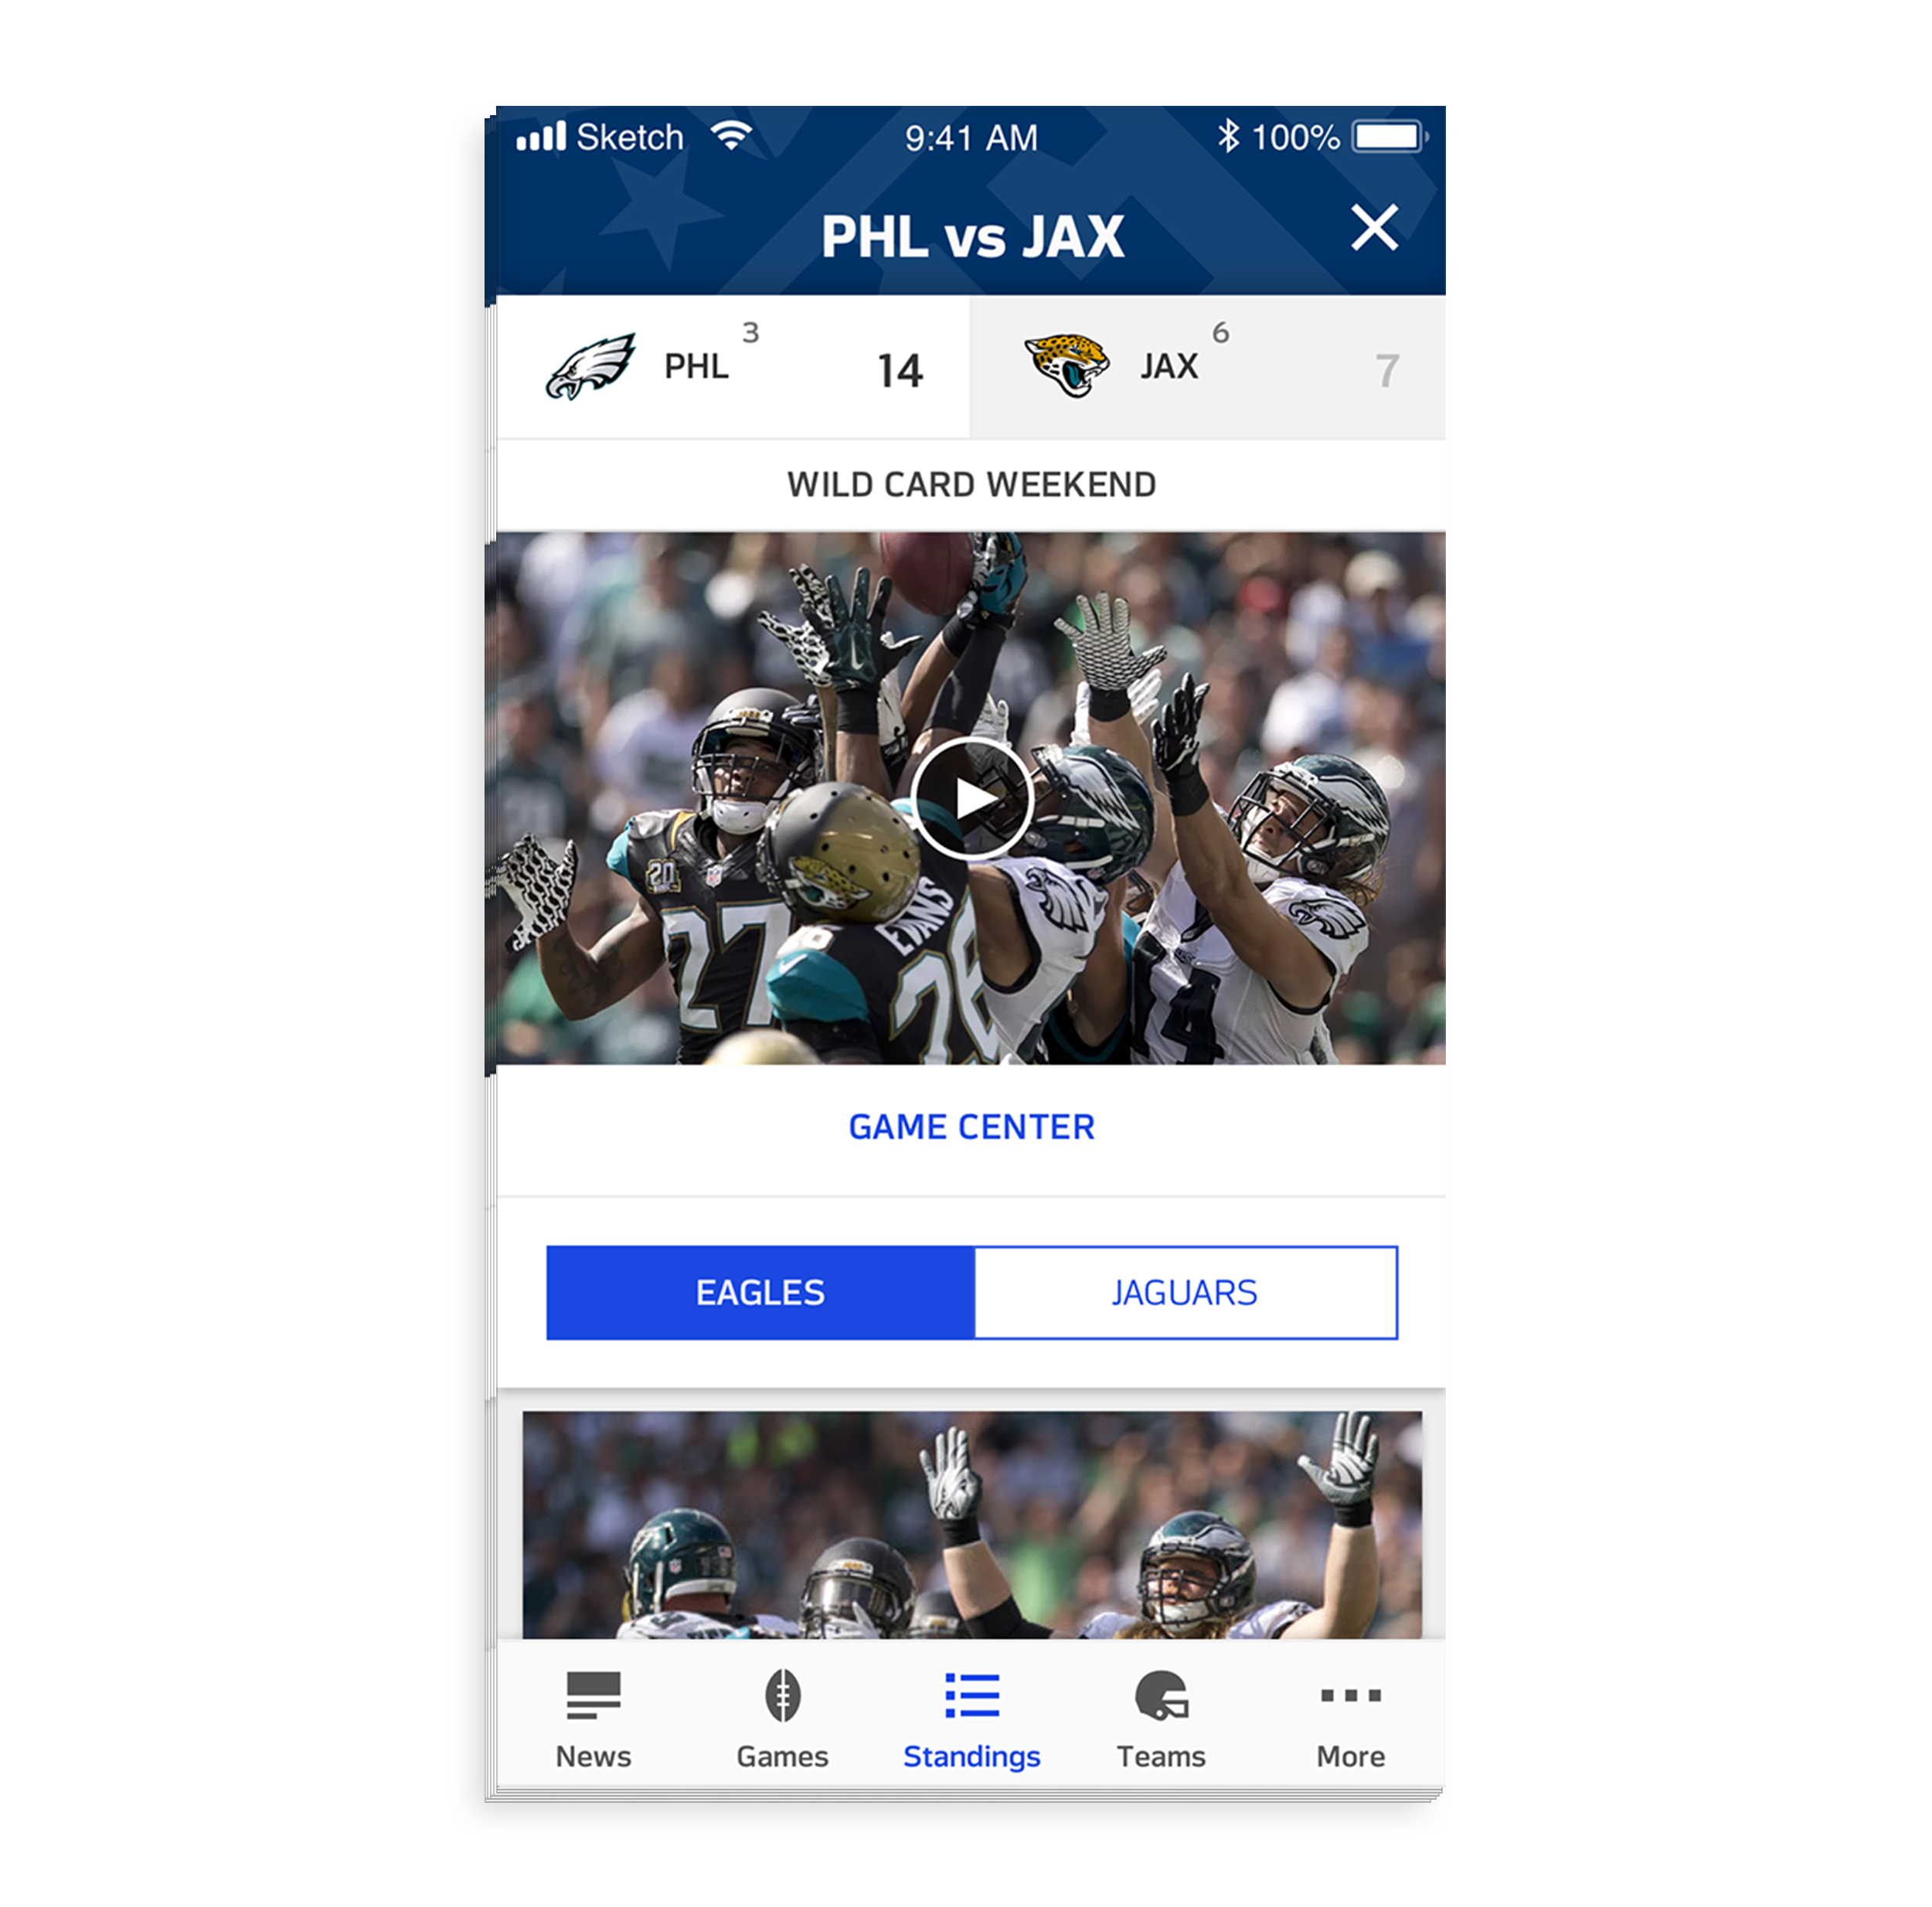 - Each playoff matchup card can be tapped to display more details, such as videos and articles, about that game. The content is filtered by a segmented control for each team, allowing for a more organized feed.